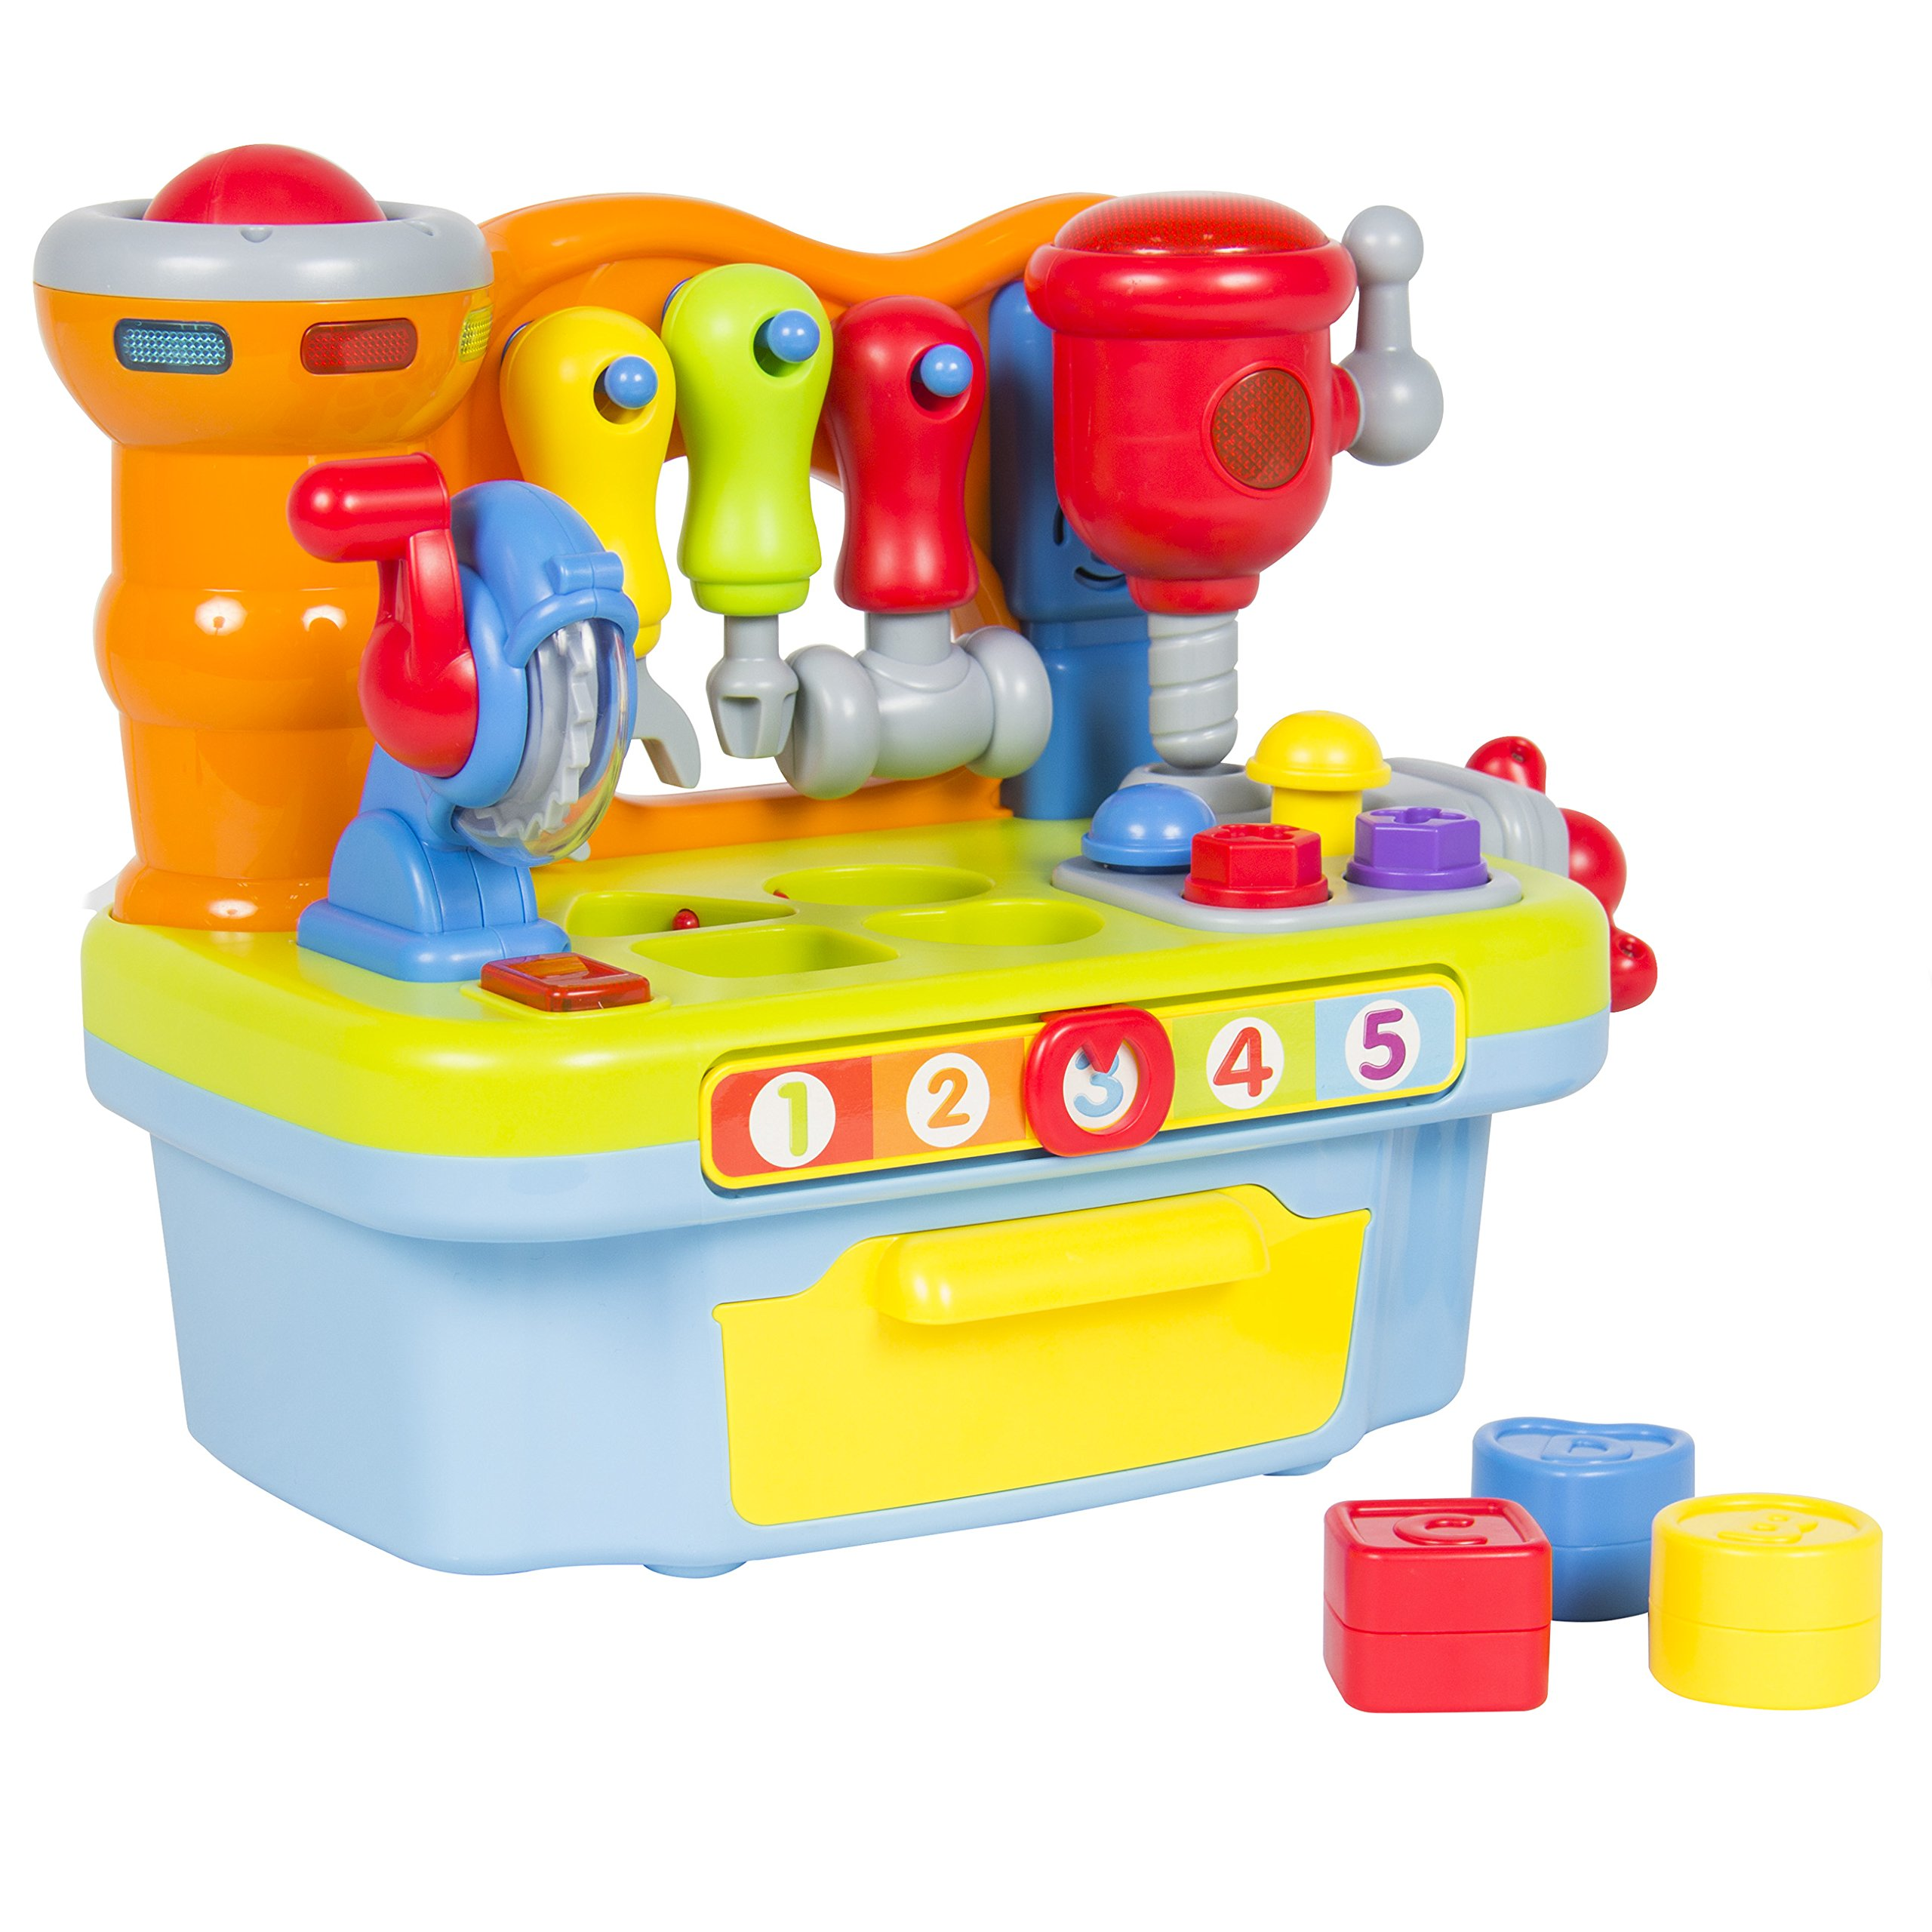 Best Choice Products Musical Learning Pretend Play Tool Workbench Toy, Fun Sound Effects & Lights by Best Choice Products (Image #2)